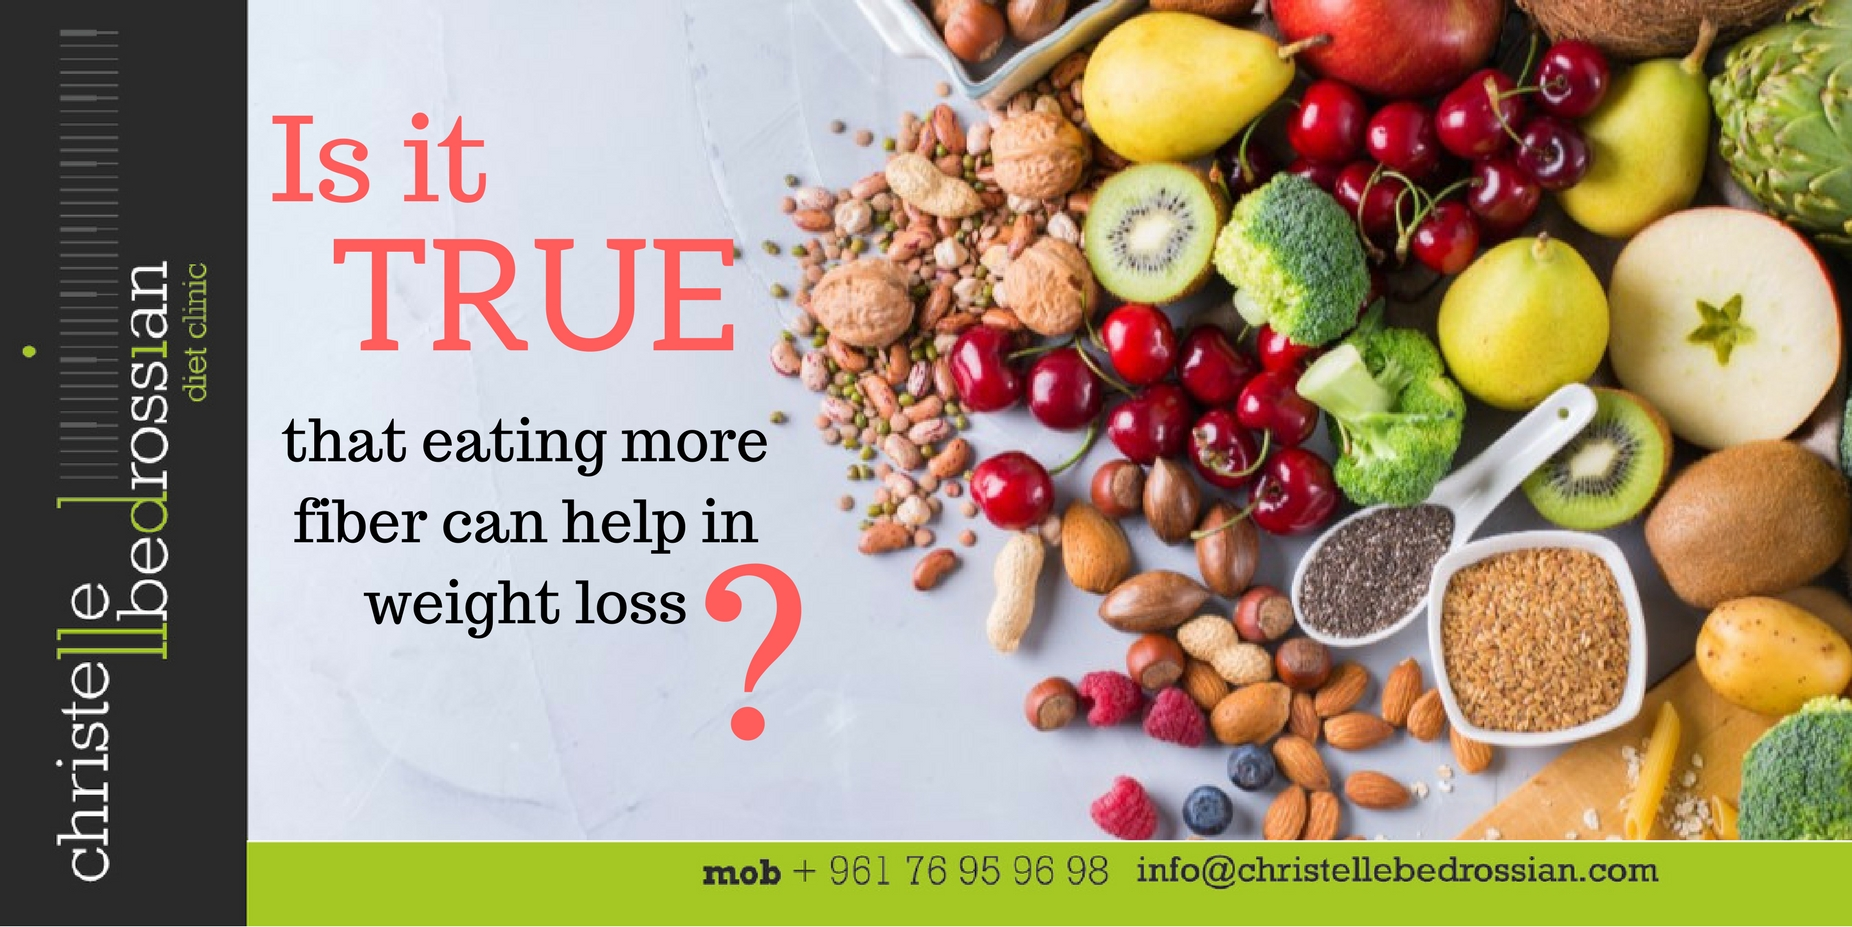 Is It True That Eating More Fiber Can Help In Weight Loss